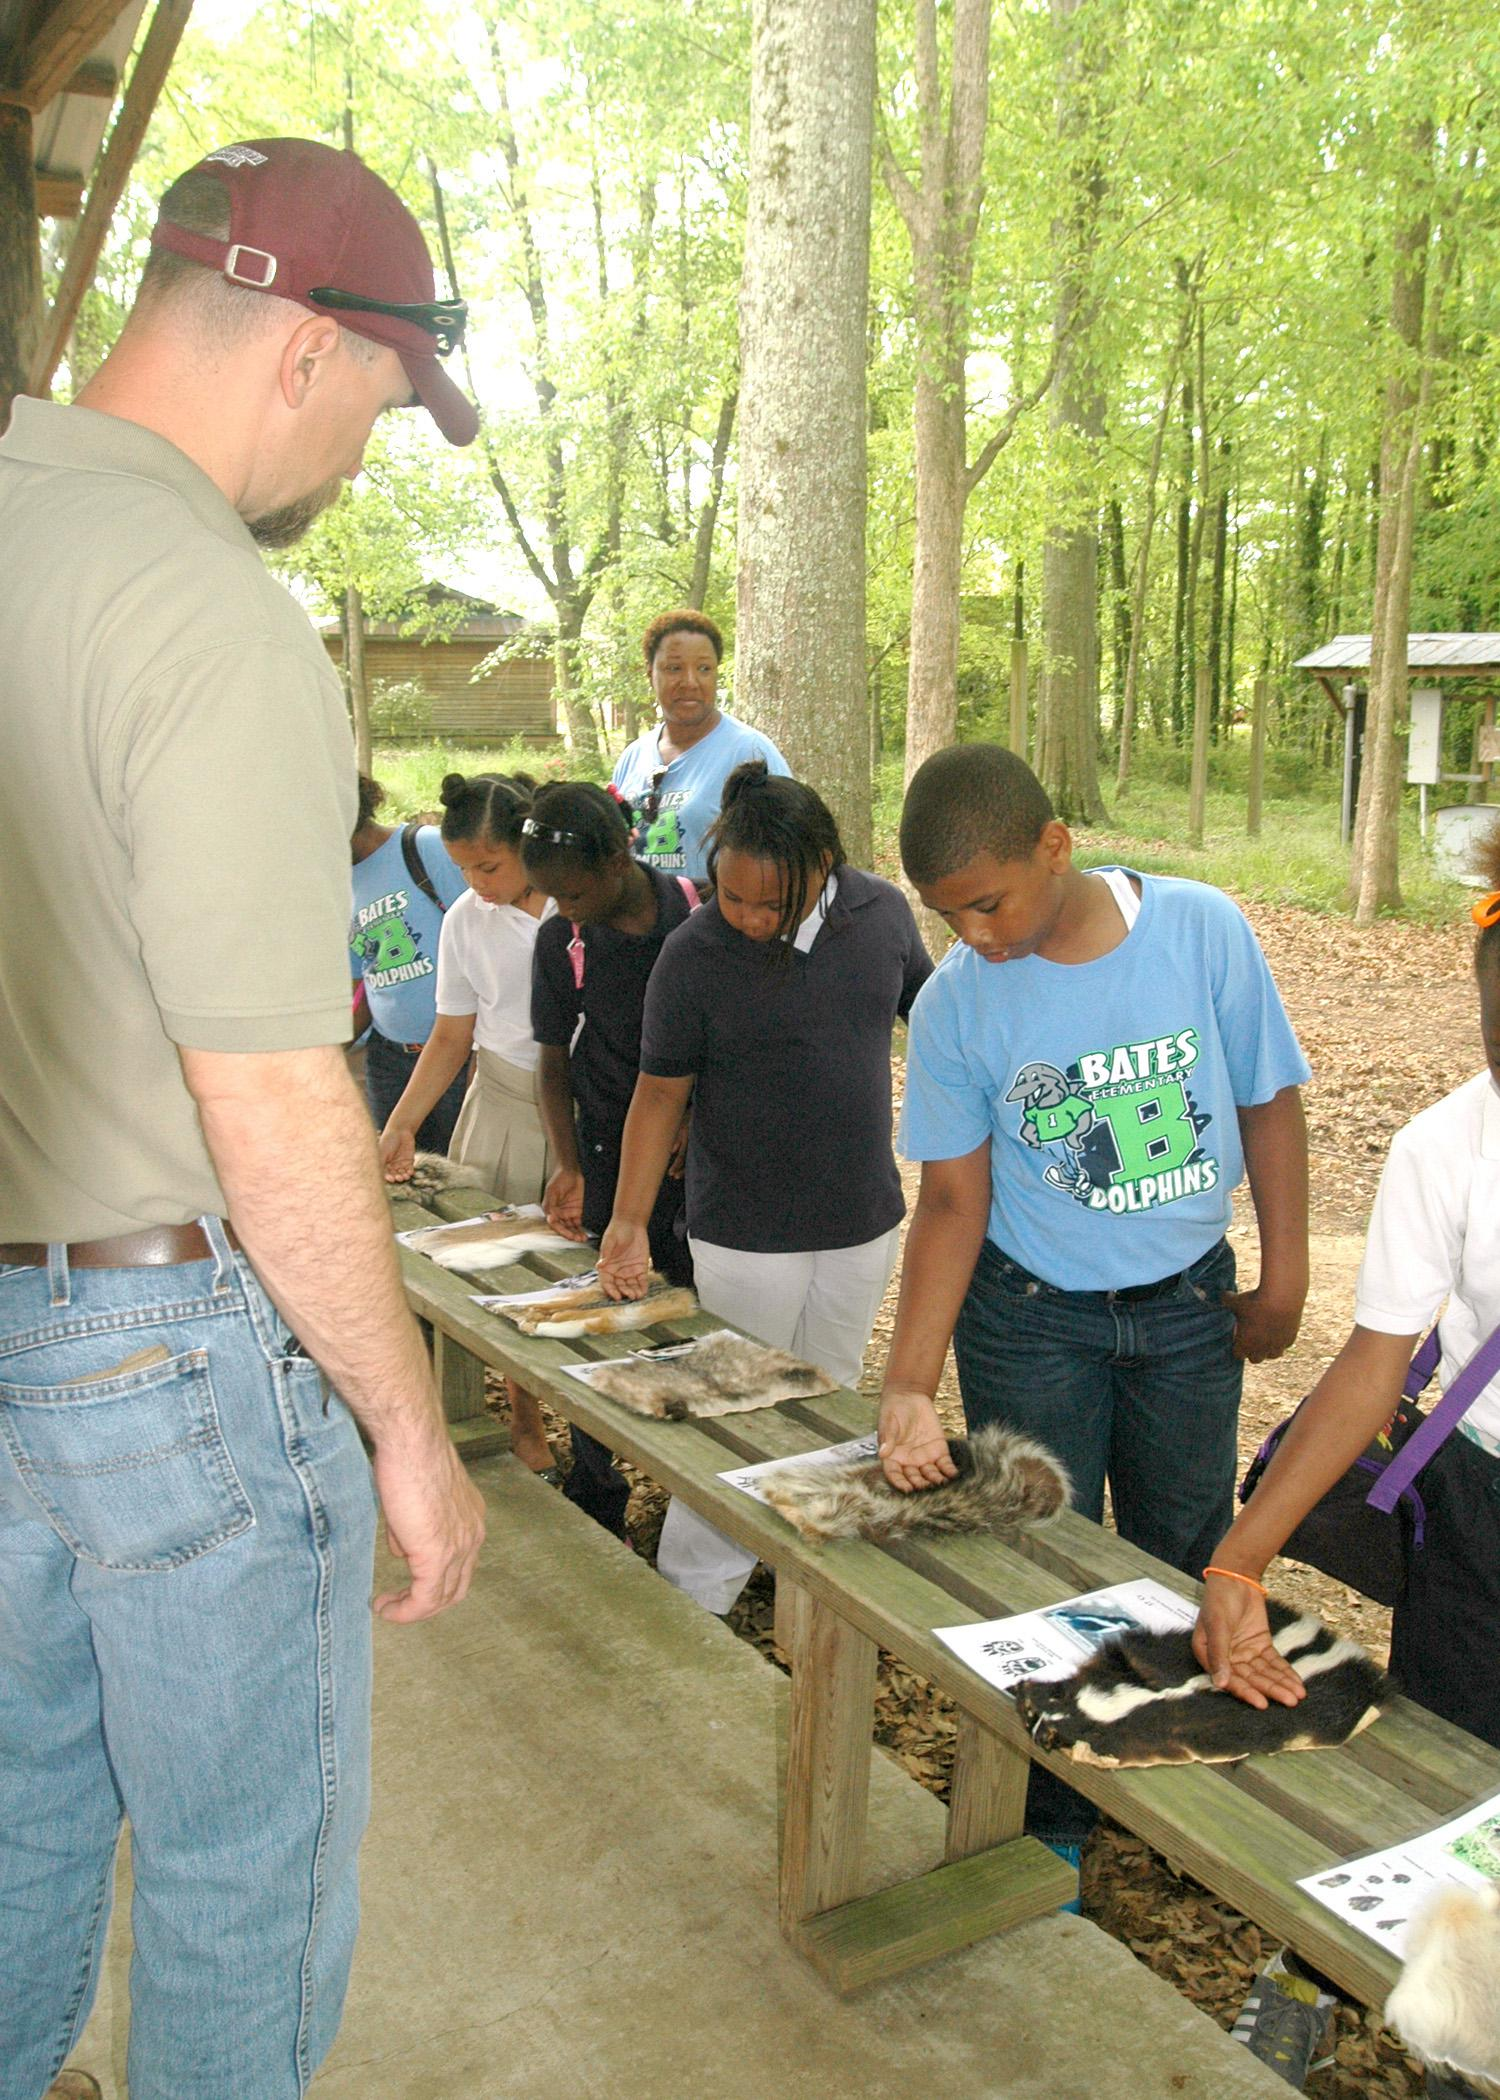 Ty Jones, county coordinator with Mississippi State University's Extension Service in Madison County, looks on as Bates Elementary fourth-graders feel the pelts of wild animals native to Mississippi, such as the skunk and raccoon. The display was part of the Extension-sponsored AgVentures at the Mississippi Agricultural and Forestry Museum in Jackson April 16 and 17. (Photo by MSU Ag Communications/Susan Collins-Smith)